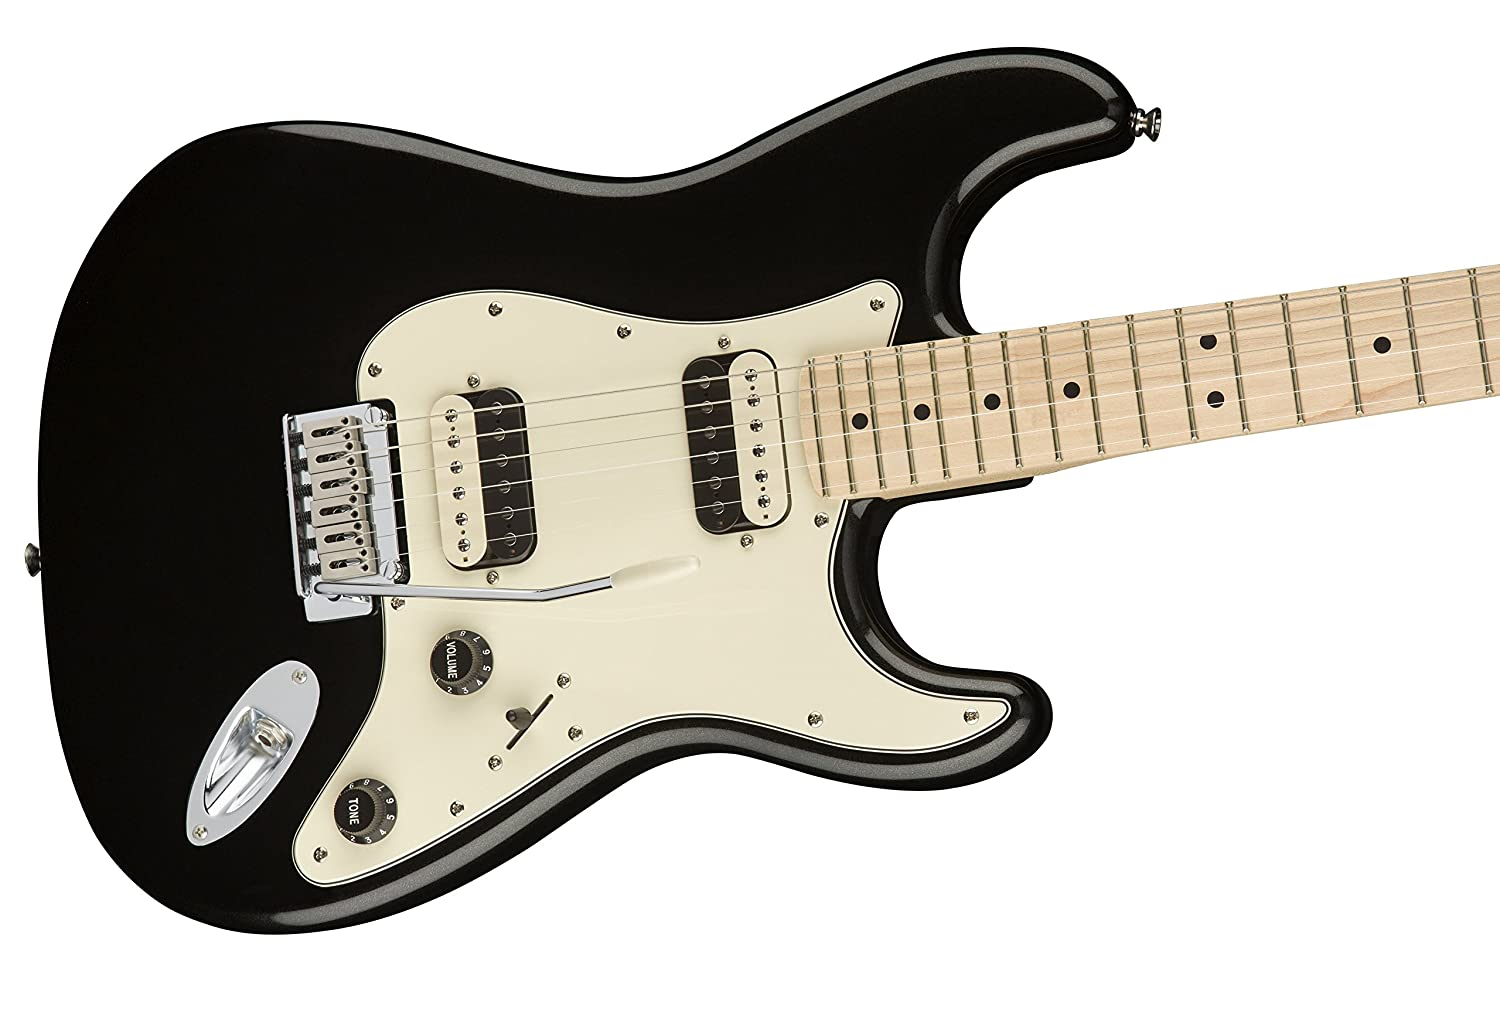 Amazon.com: Squier by Fender Contemporary Stratocaster Electric Guitar - HH - Maple Fingerboard - Black Metallic: Musical Instruments